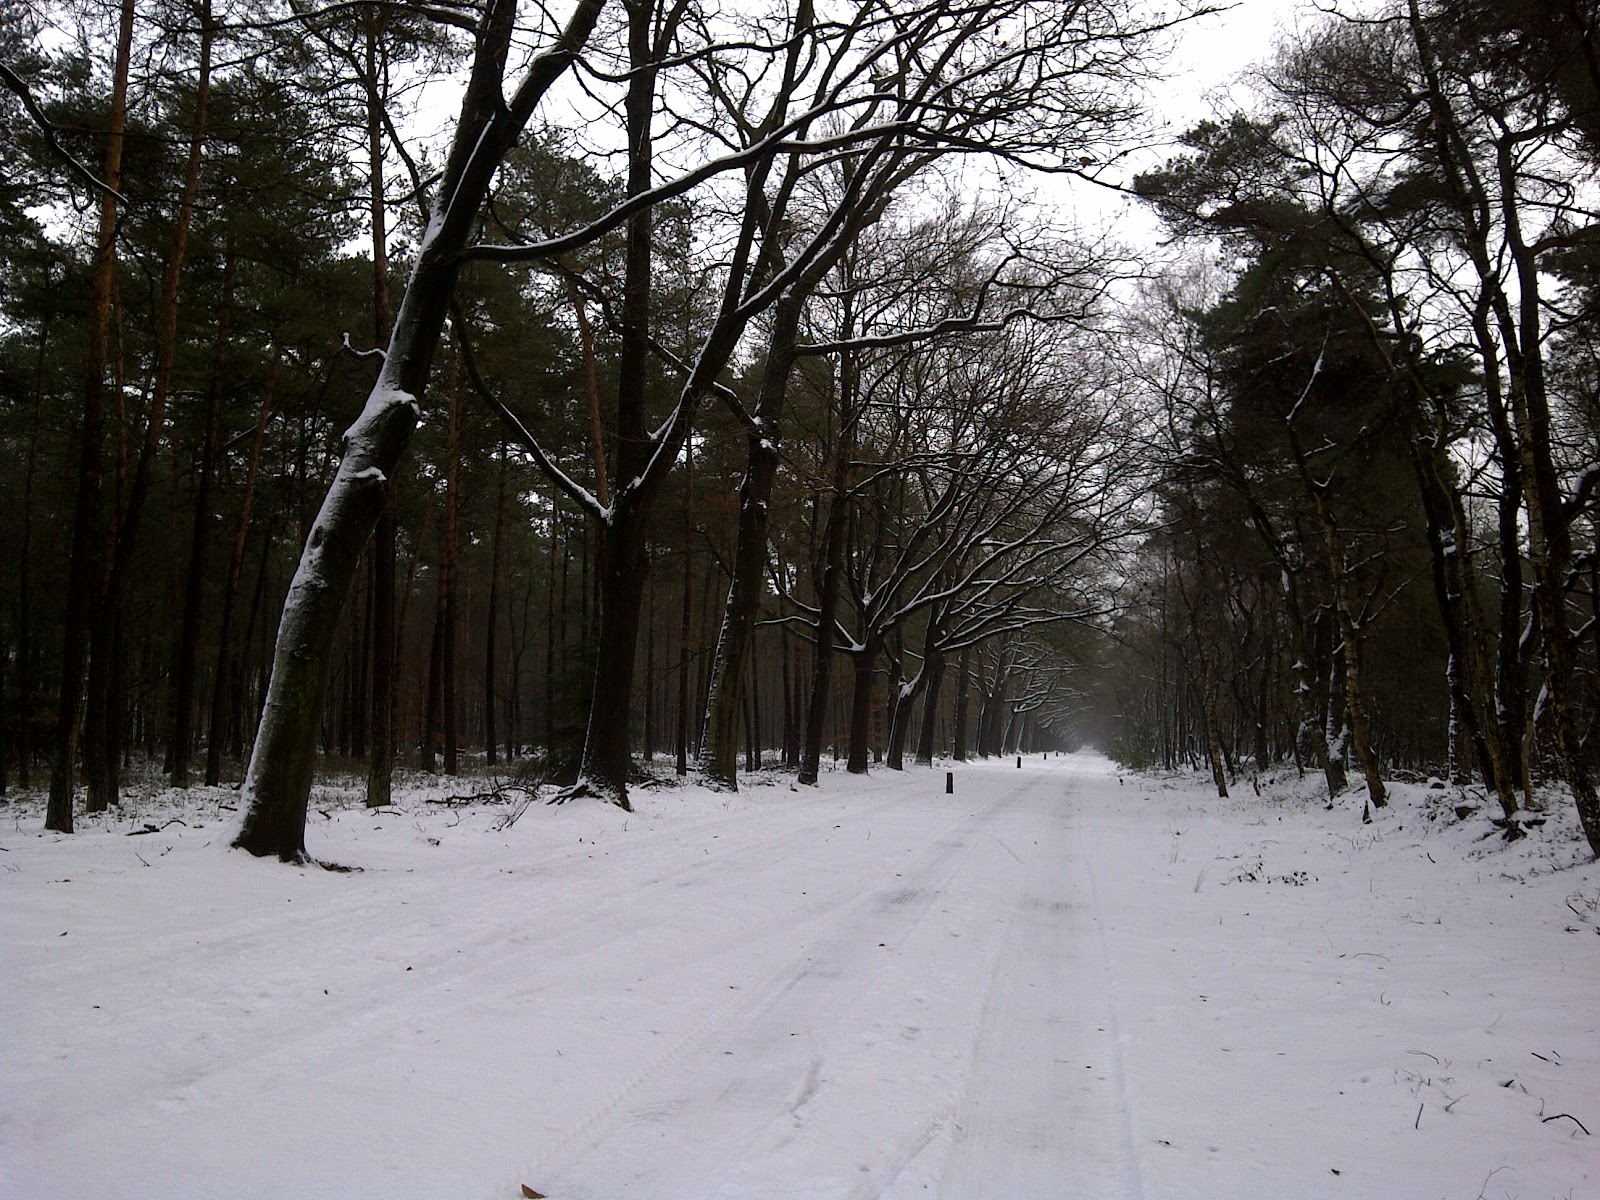 Lose the Xmas kilos (and flee from in-laws) in a 15km run across snowy #Holterberg